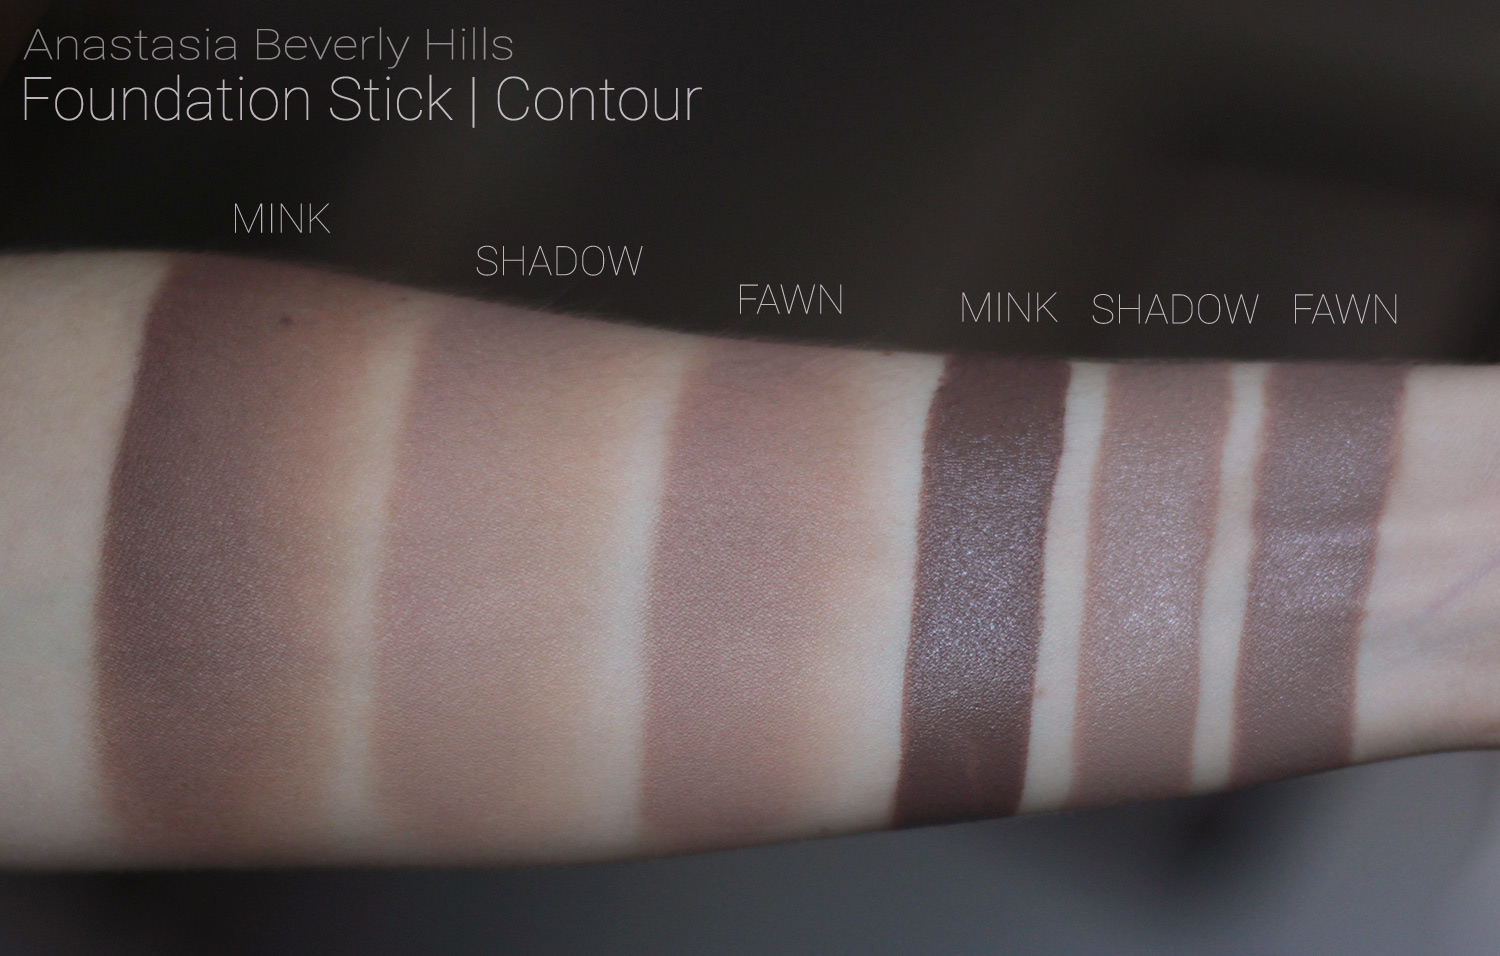 ABH Foundation sticks CONTOUR